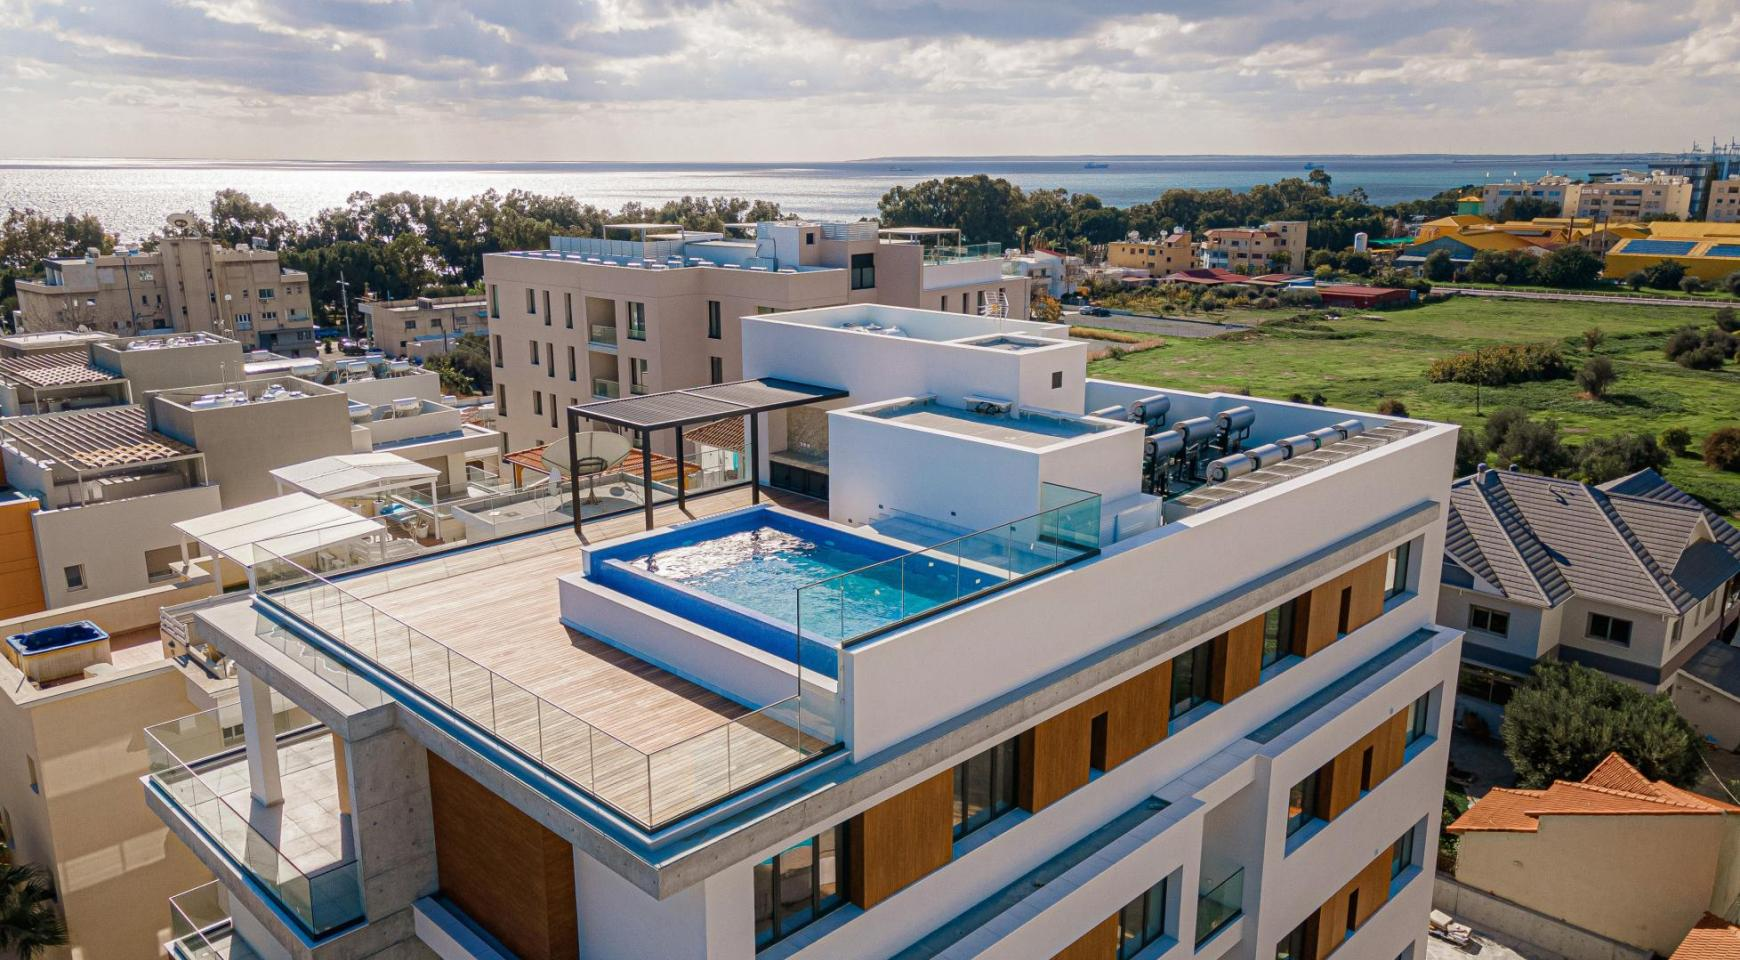 Hortensia Residence, Apt. 103. 3 Bedroom Apartment within a New Complex near the Sea  - 1